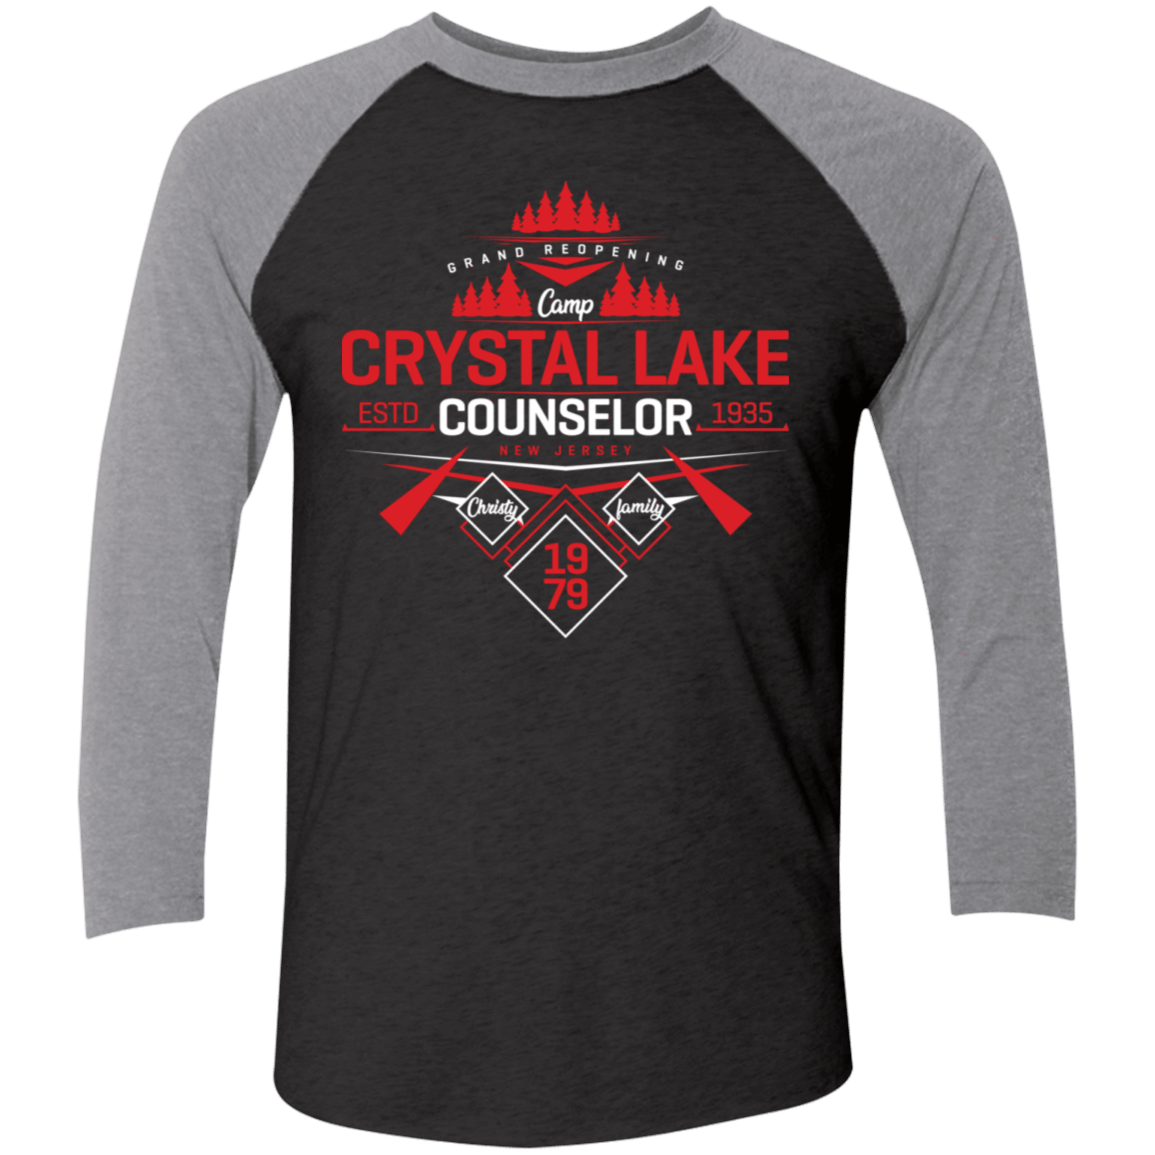 T-Shirts Vintage Black/Premium Heather / X-Small Crystal Lake Counselor Men's Triblend 3/4 Sleeve